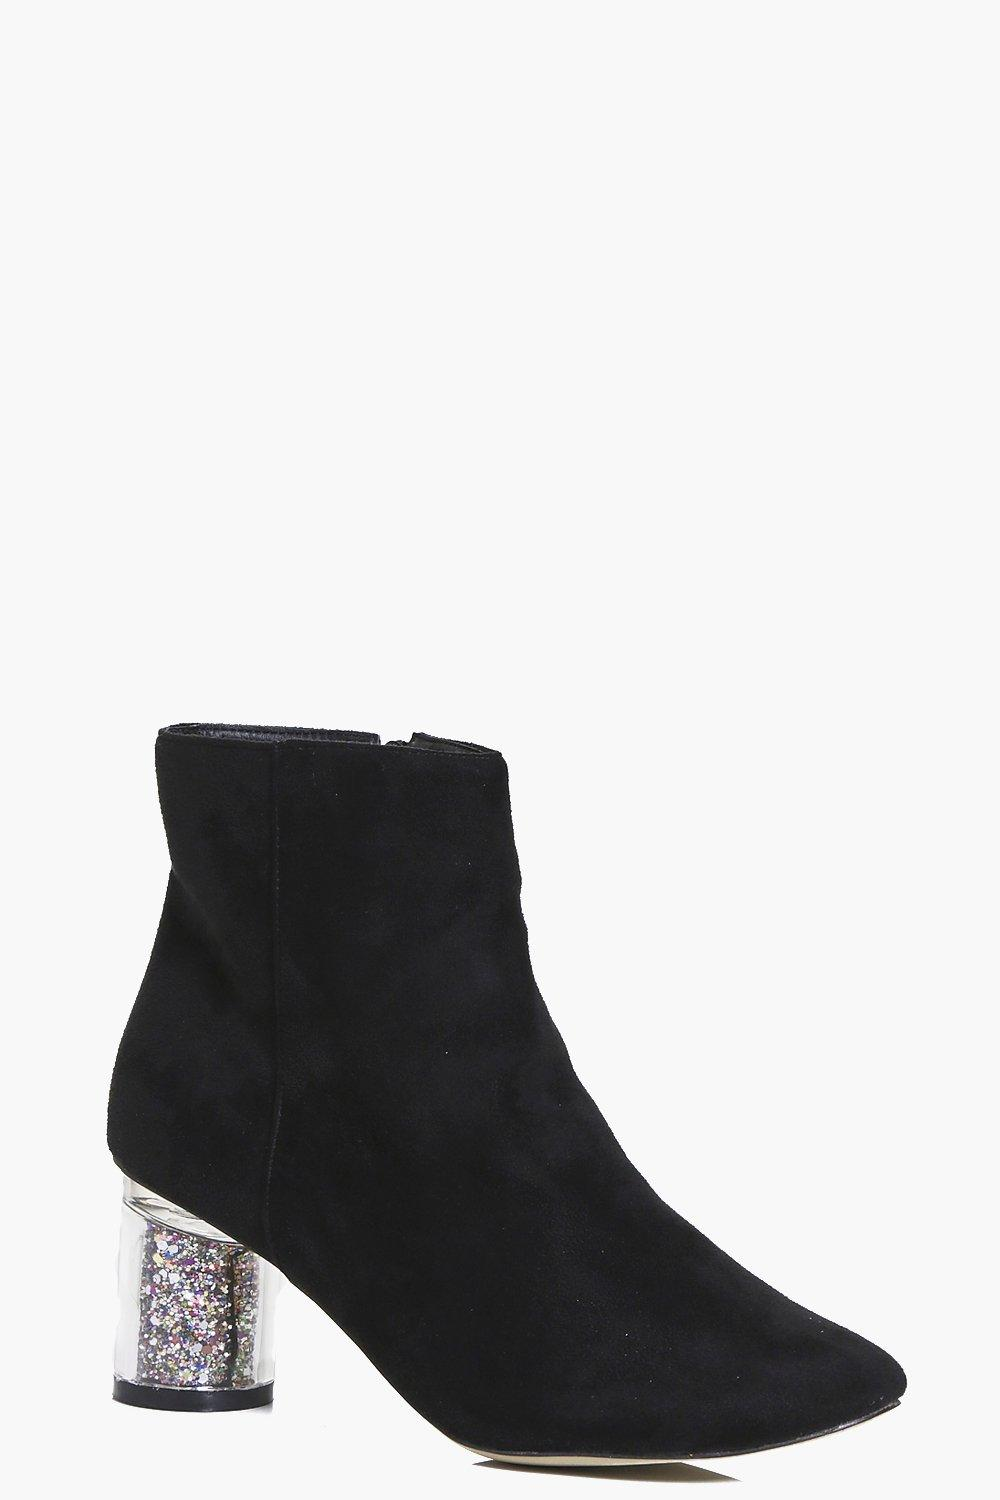 Clear Glitter Heel Ankle Boot black